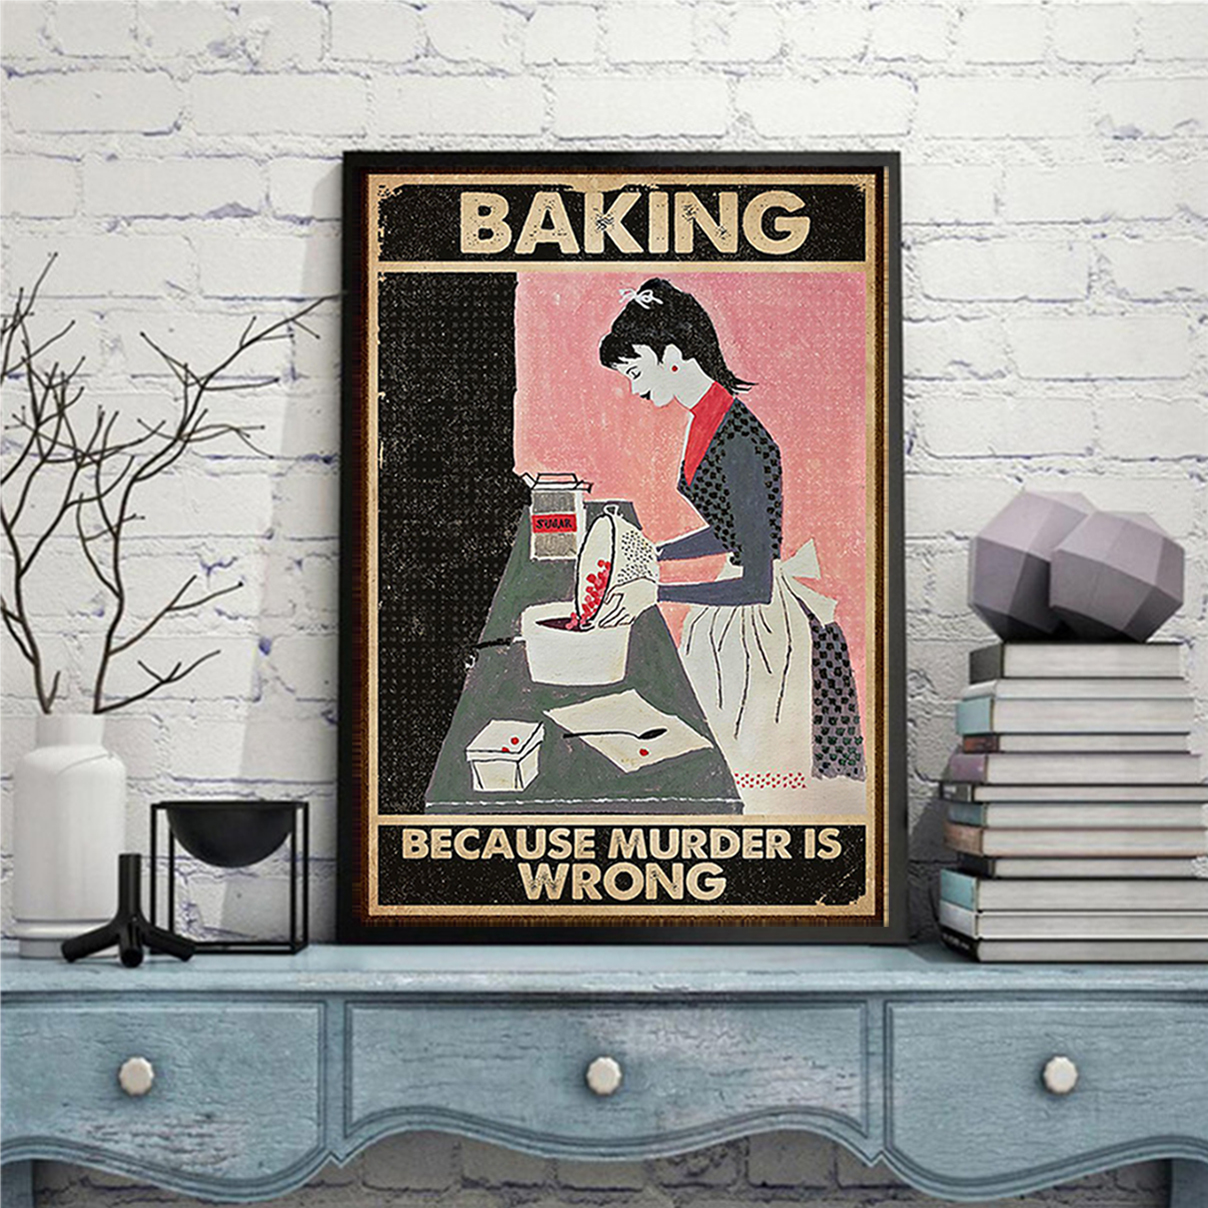 Baking because murder is wrong poster A3